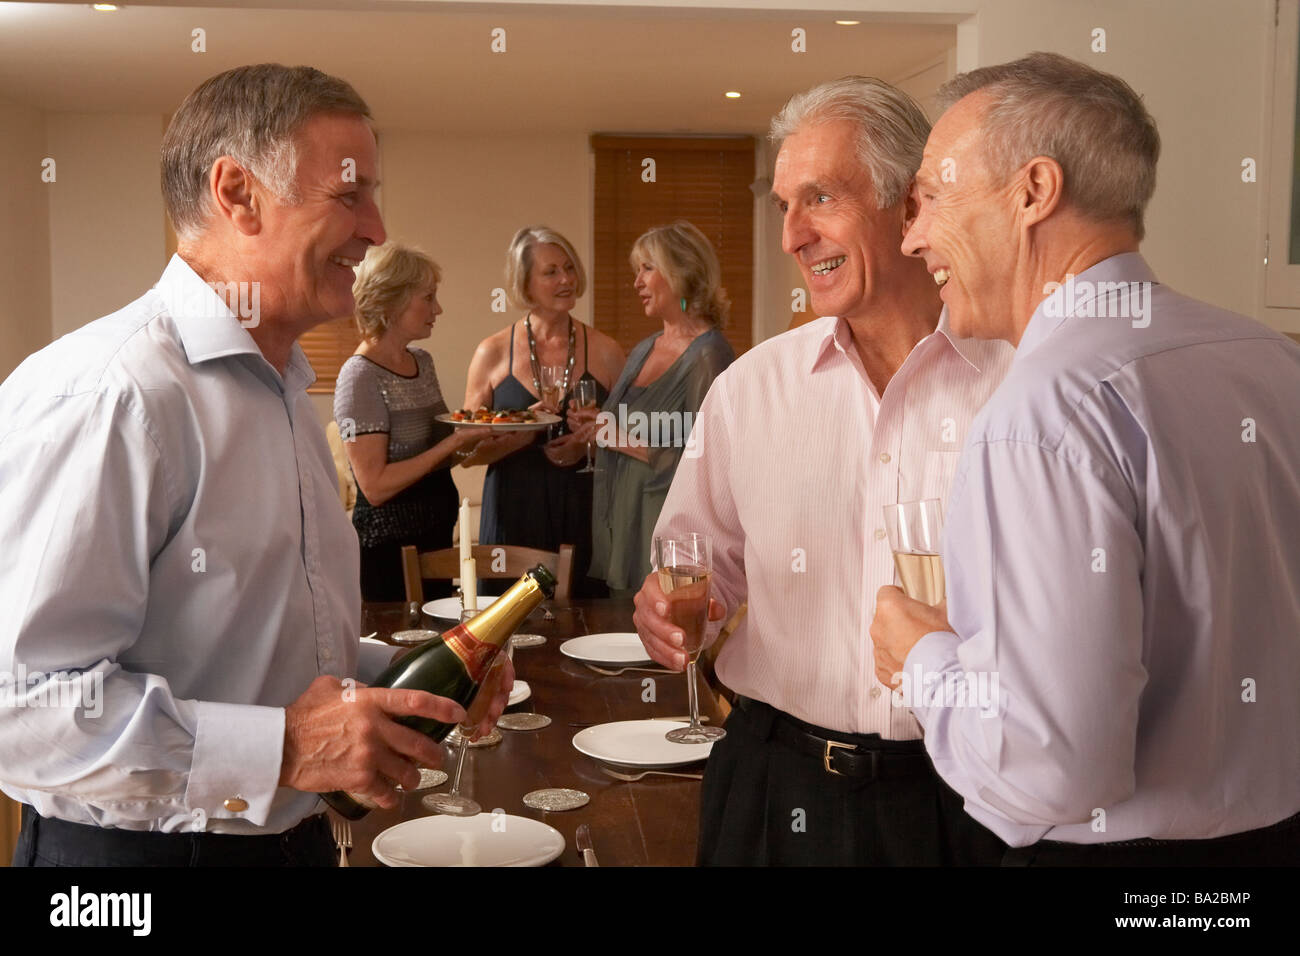 Man Serving Champagne To His Guests At A Dinner Party - Stock Image